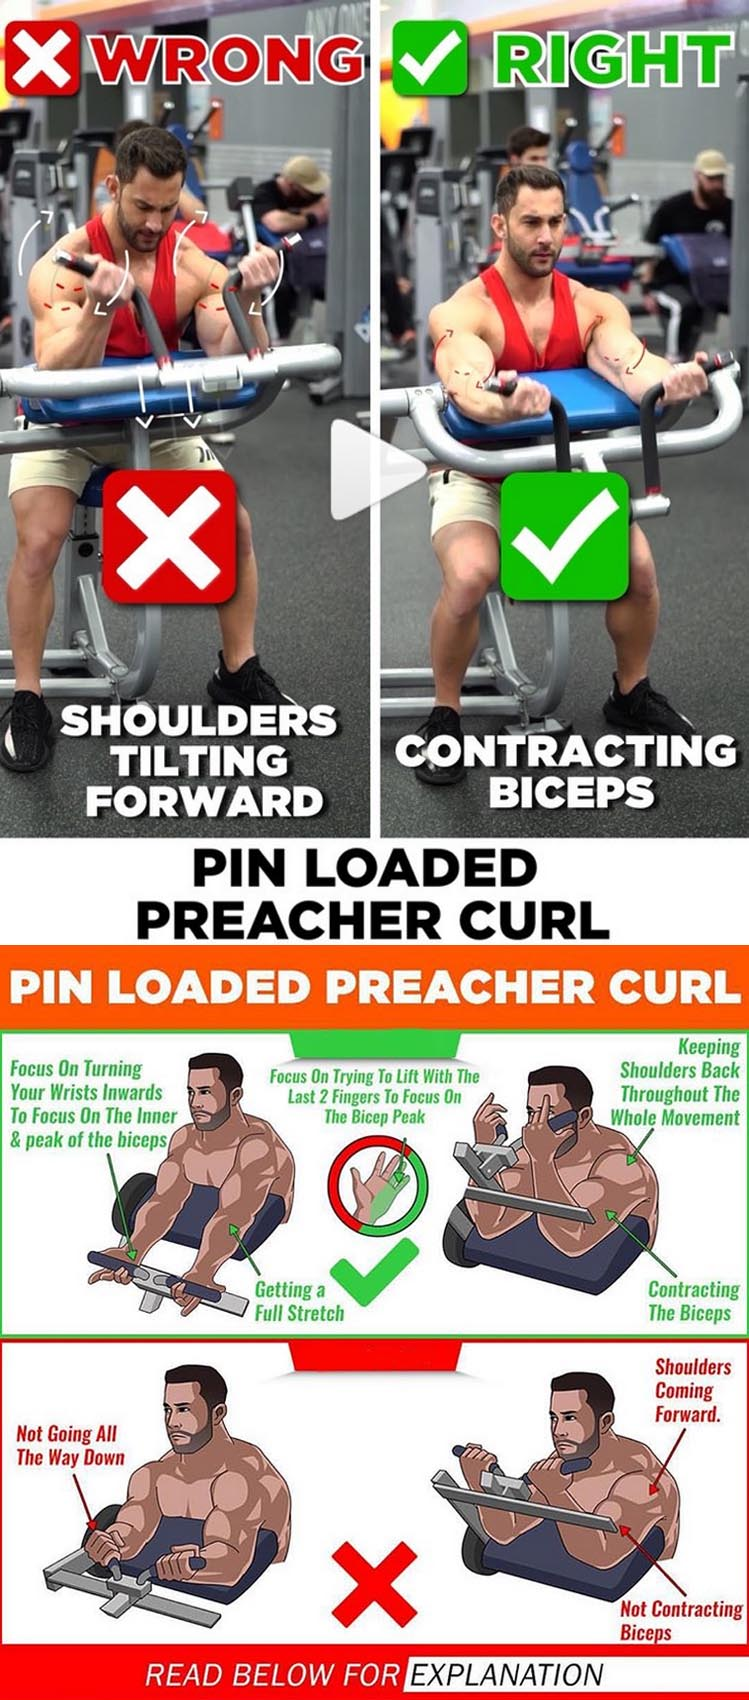 PIN LOADED PREACHER CURL